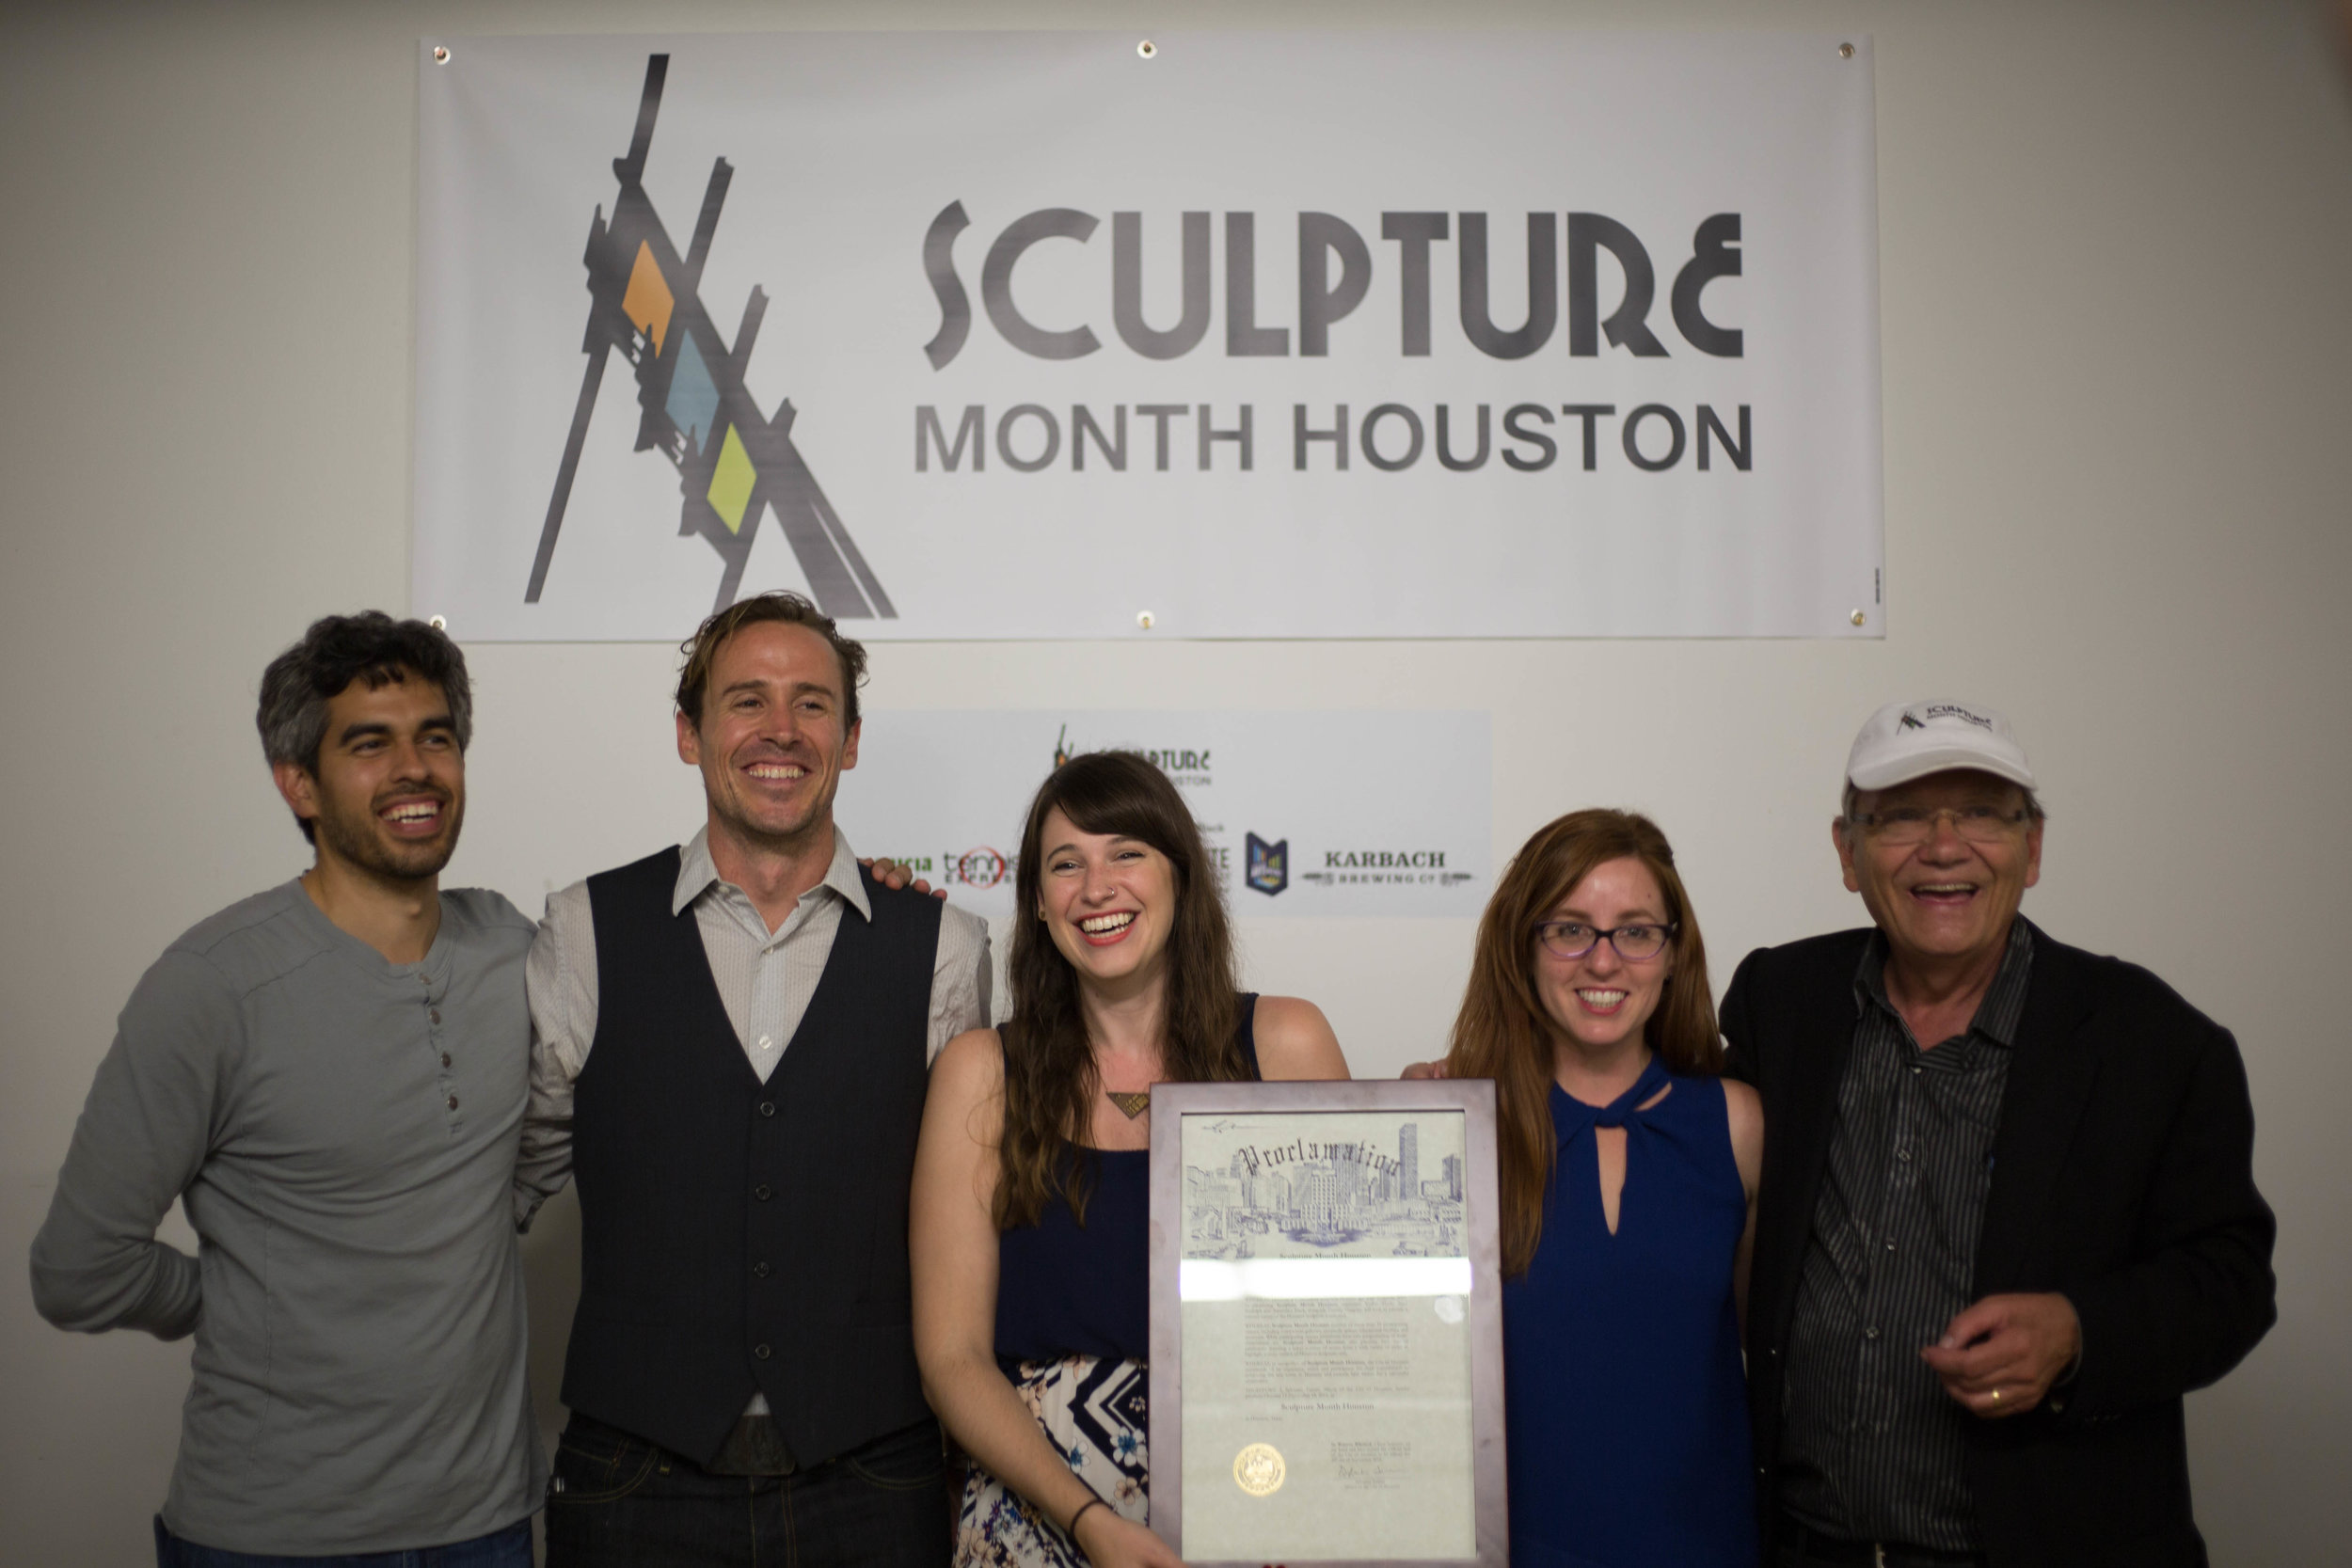 Sculpture Month Houston Hosts with Proclamation at SITE Gallery Houston